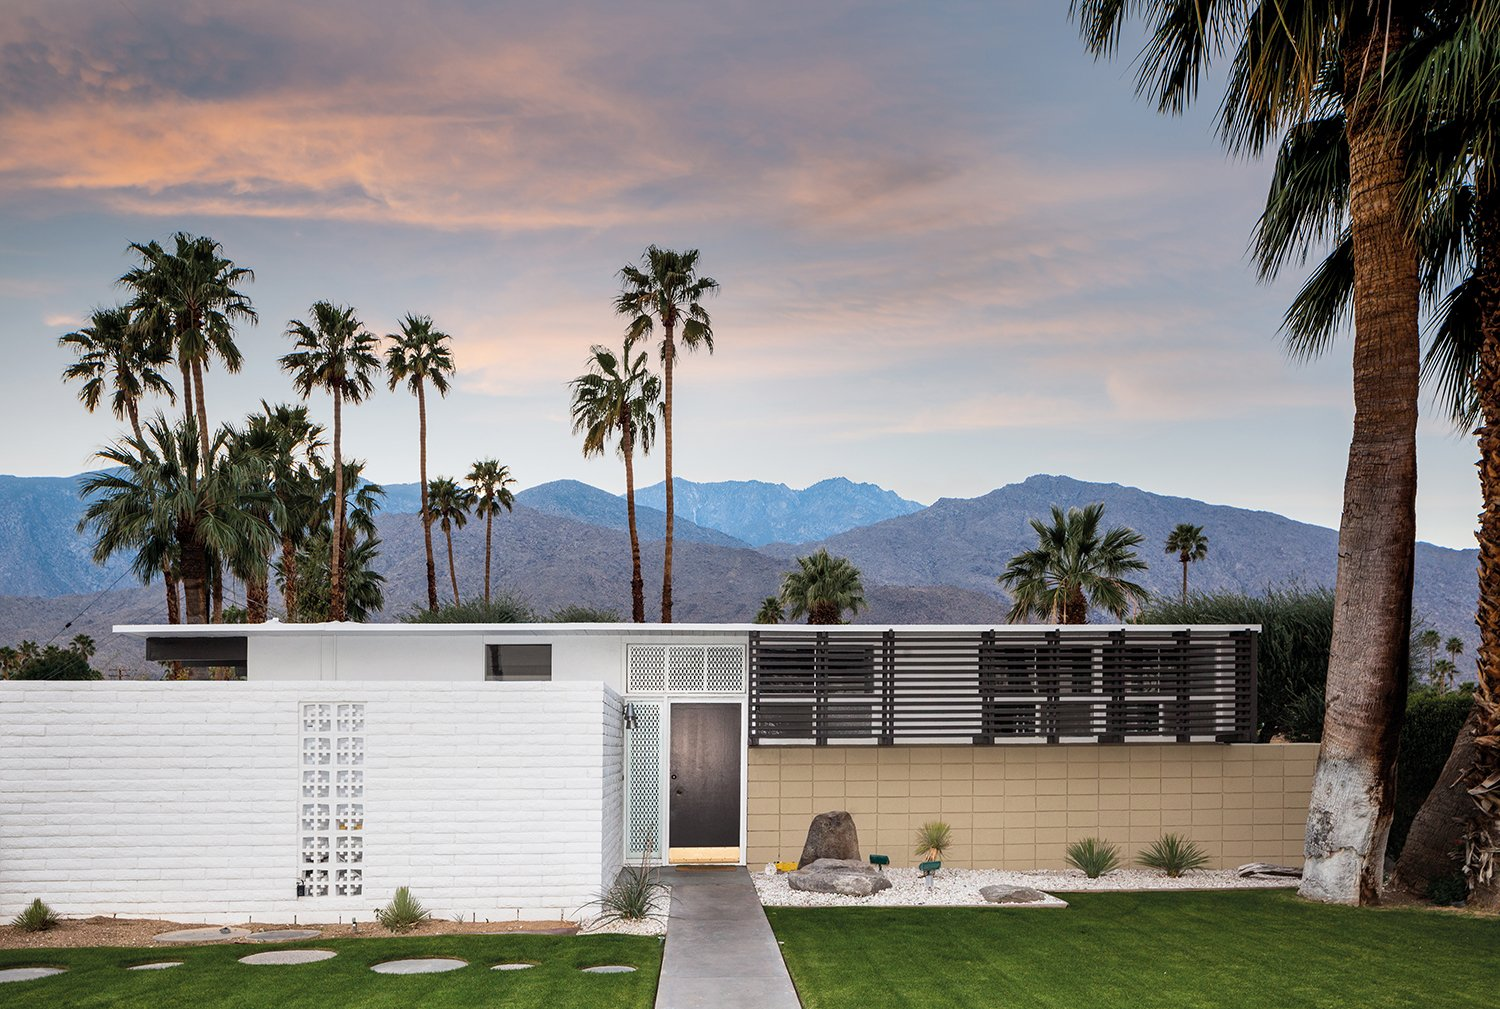 Another 1956 tract house with a flat roof designed by Krisel. Tagged: Exterior, House, Mid-Century Building Type, Flat RoofLine, Brick Siding Material, and Concrete Siding Material.  A Crash Course in Palm Springs Architecture by Matthew Keeshin from Midcentury Lovers: You Can Thank This Architect for Transforming Palm Springs Into a Modernist Hotbed